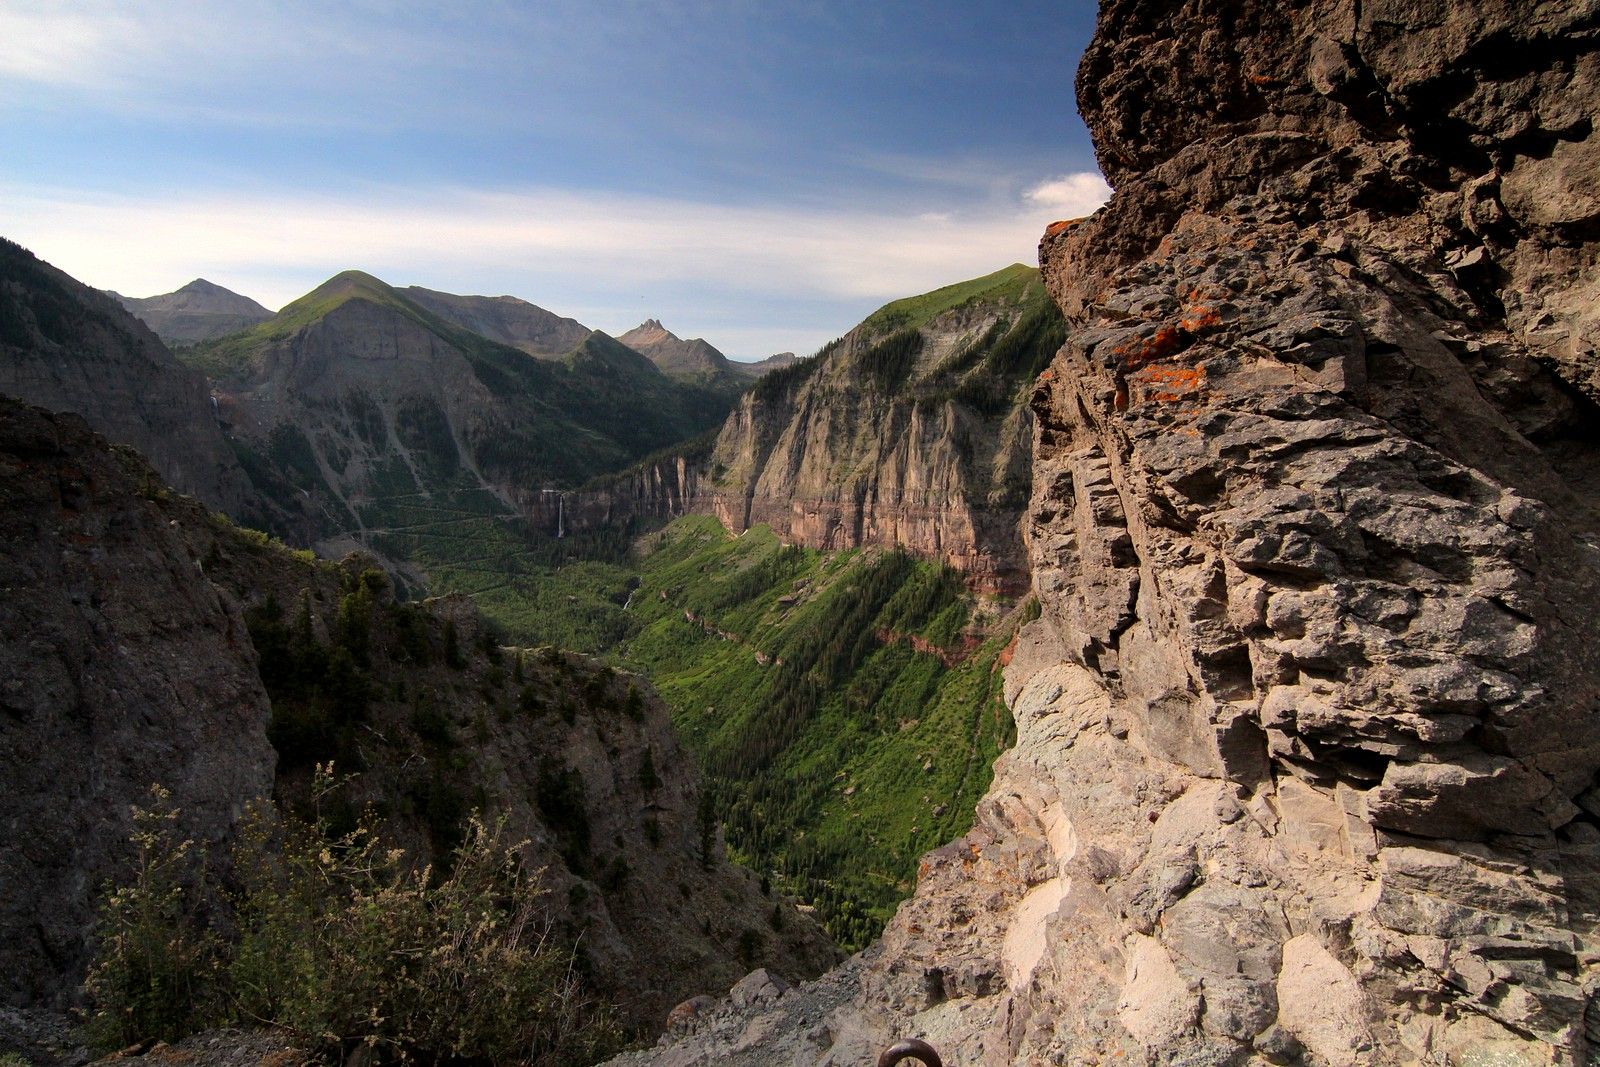 Telluride Valley and Bridal Veil Falls, seen from Tomboy Road.